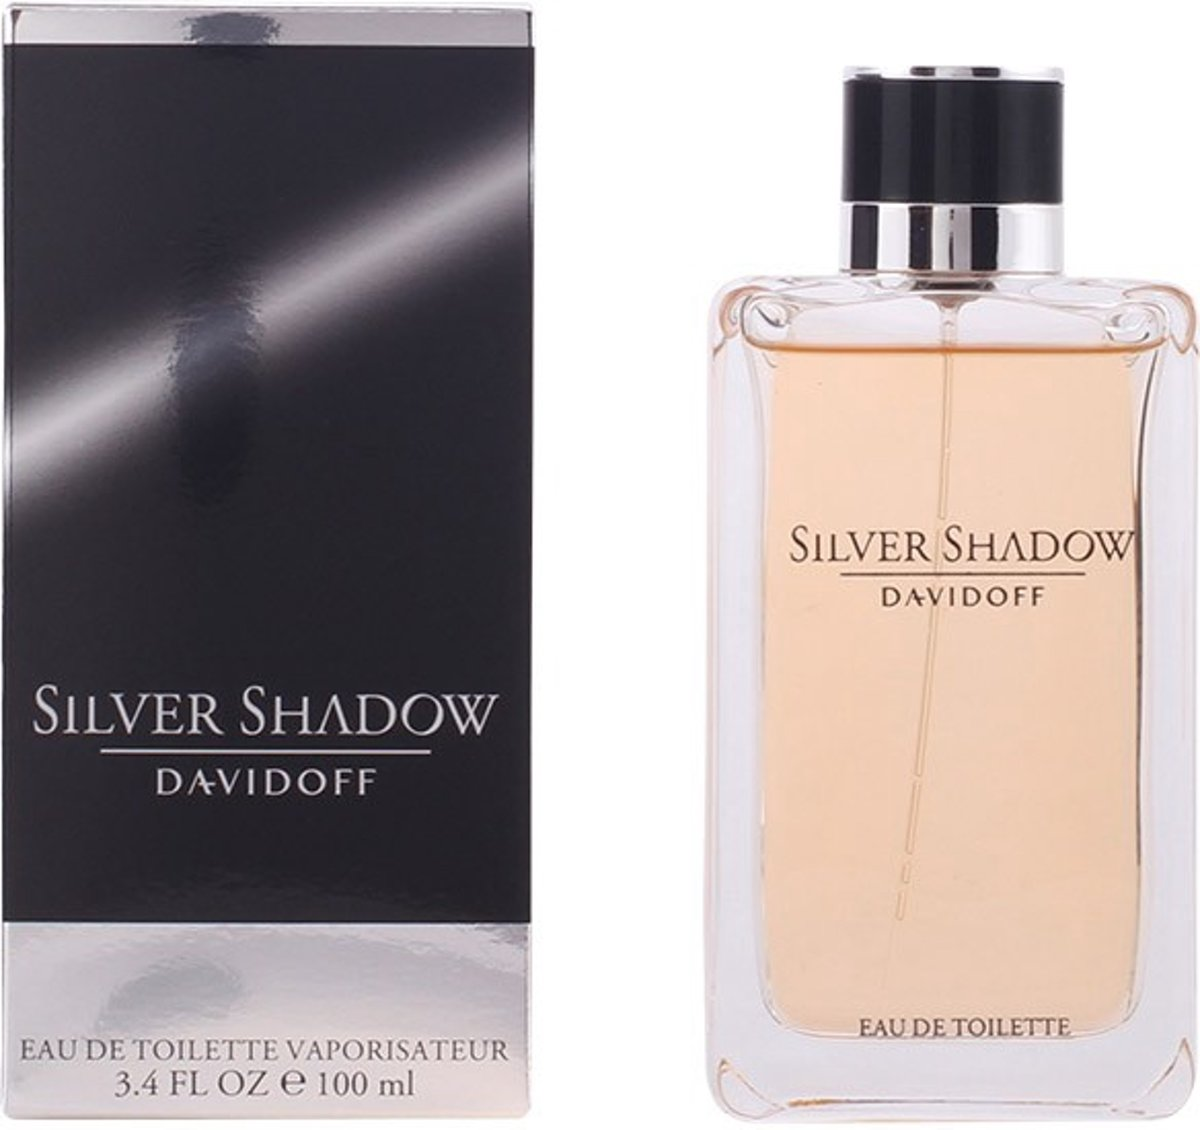 MULTI BUNDEL 2 stuks SILVER SHADOW eau de toilette spray 100 ml